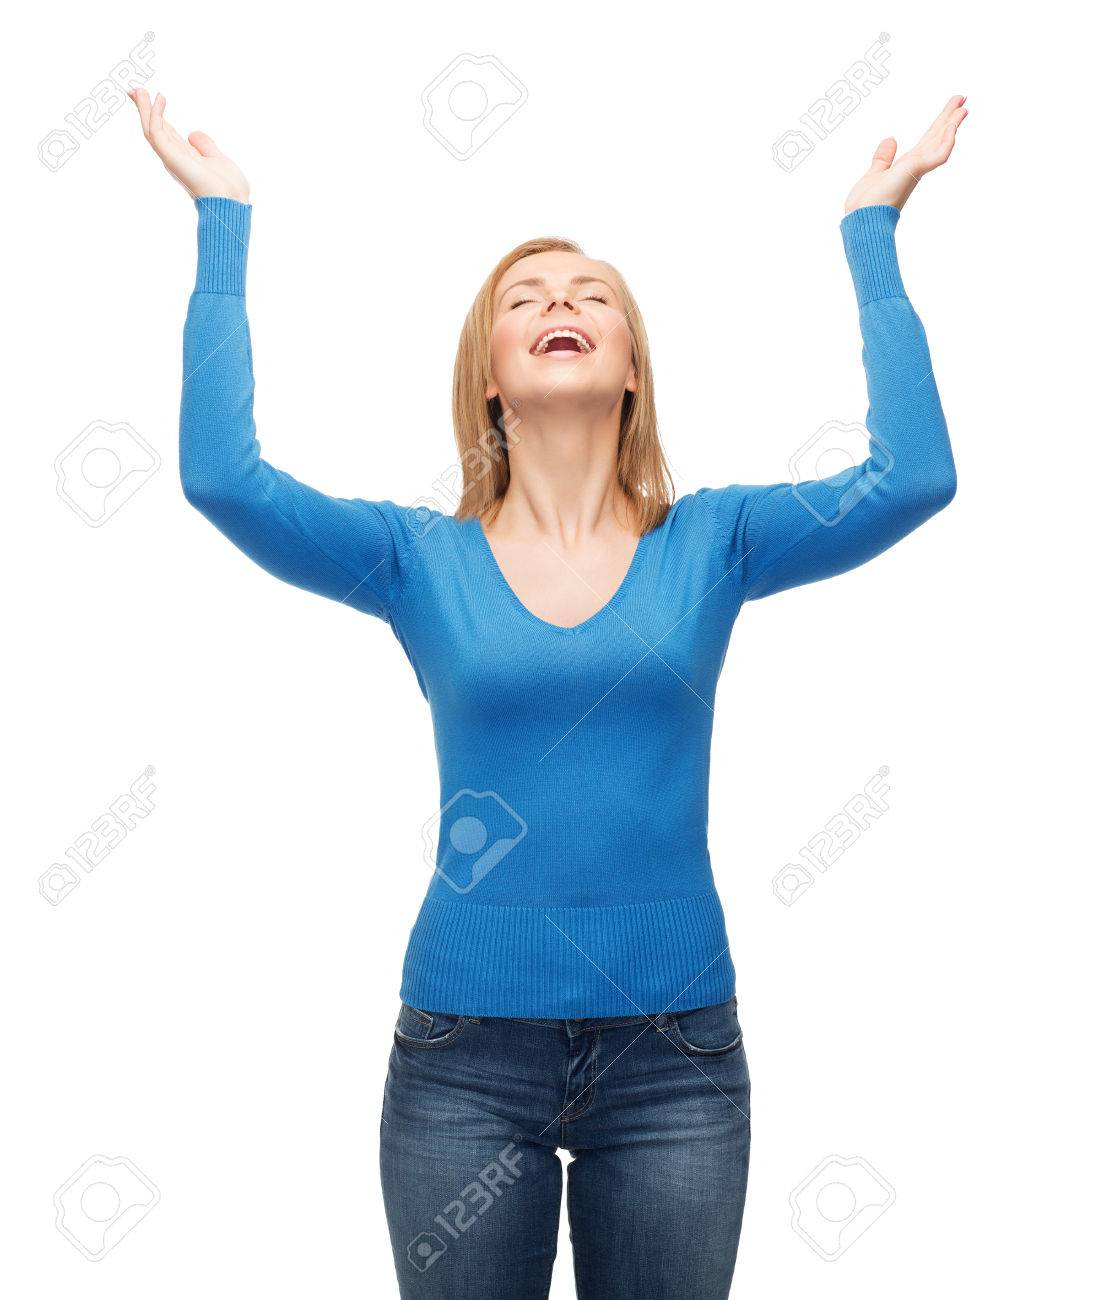 happiness and people concept - laughing young woman with closed eyes waving hands Stock Photo - 28139906